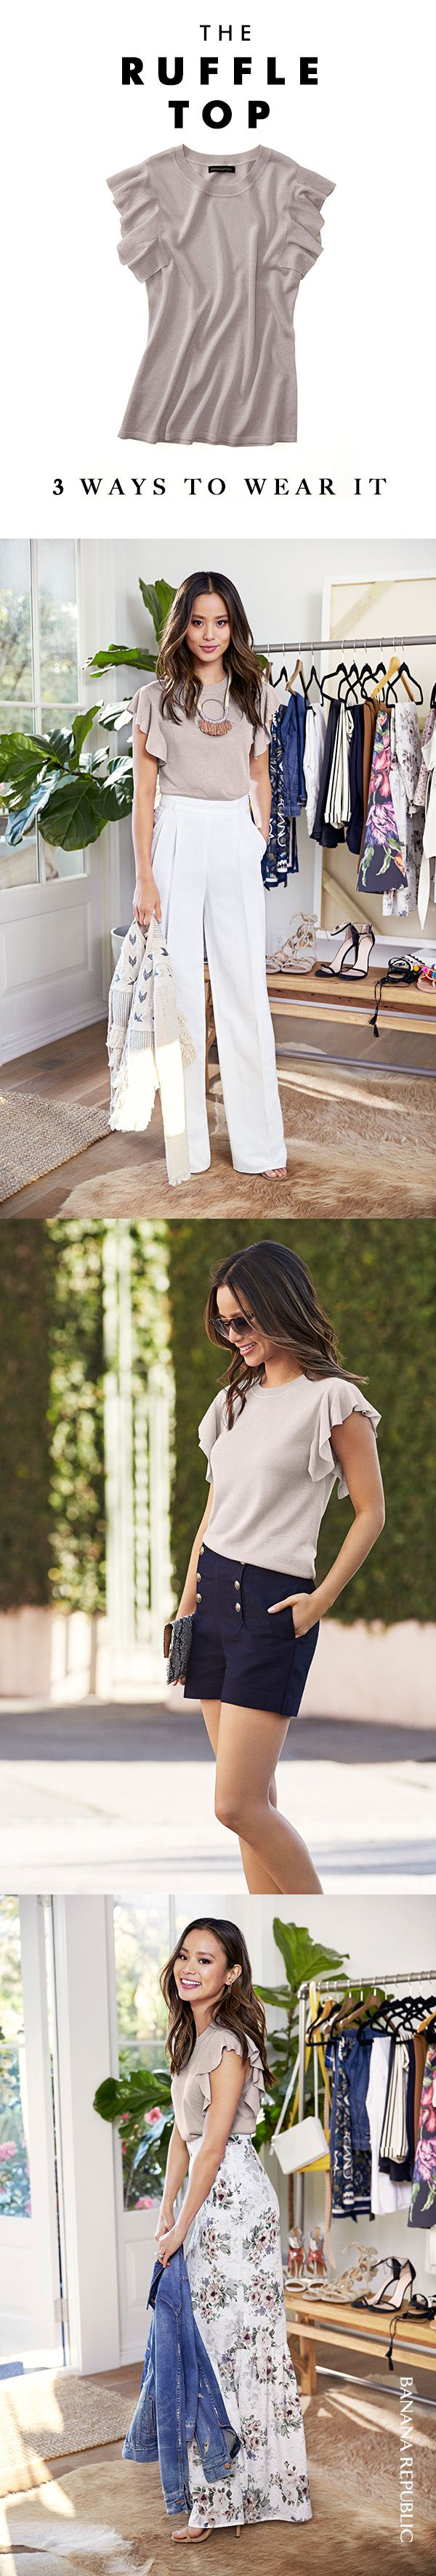 Style icon Jamie Chung picked her summer Closet VIPs: very important pieces that can be worn in so many ways. This soft pink ruffle top has great texture and a touch of feminine flavor. Play up the beautiful color with a fun, floral maxi skirt. Or, wear it with wide-leg pants, a cool statement necklace and a fun jacket.